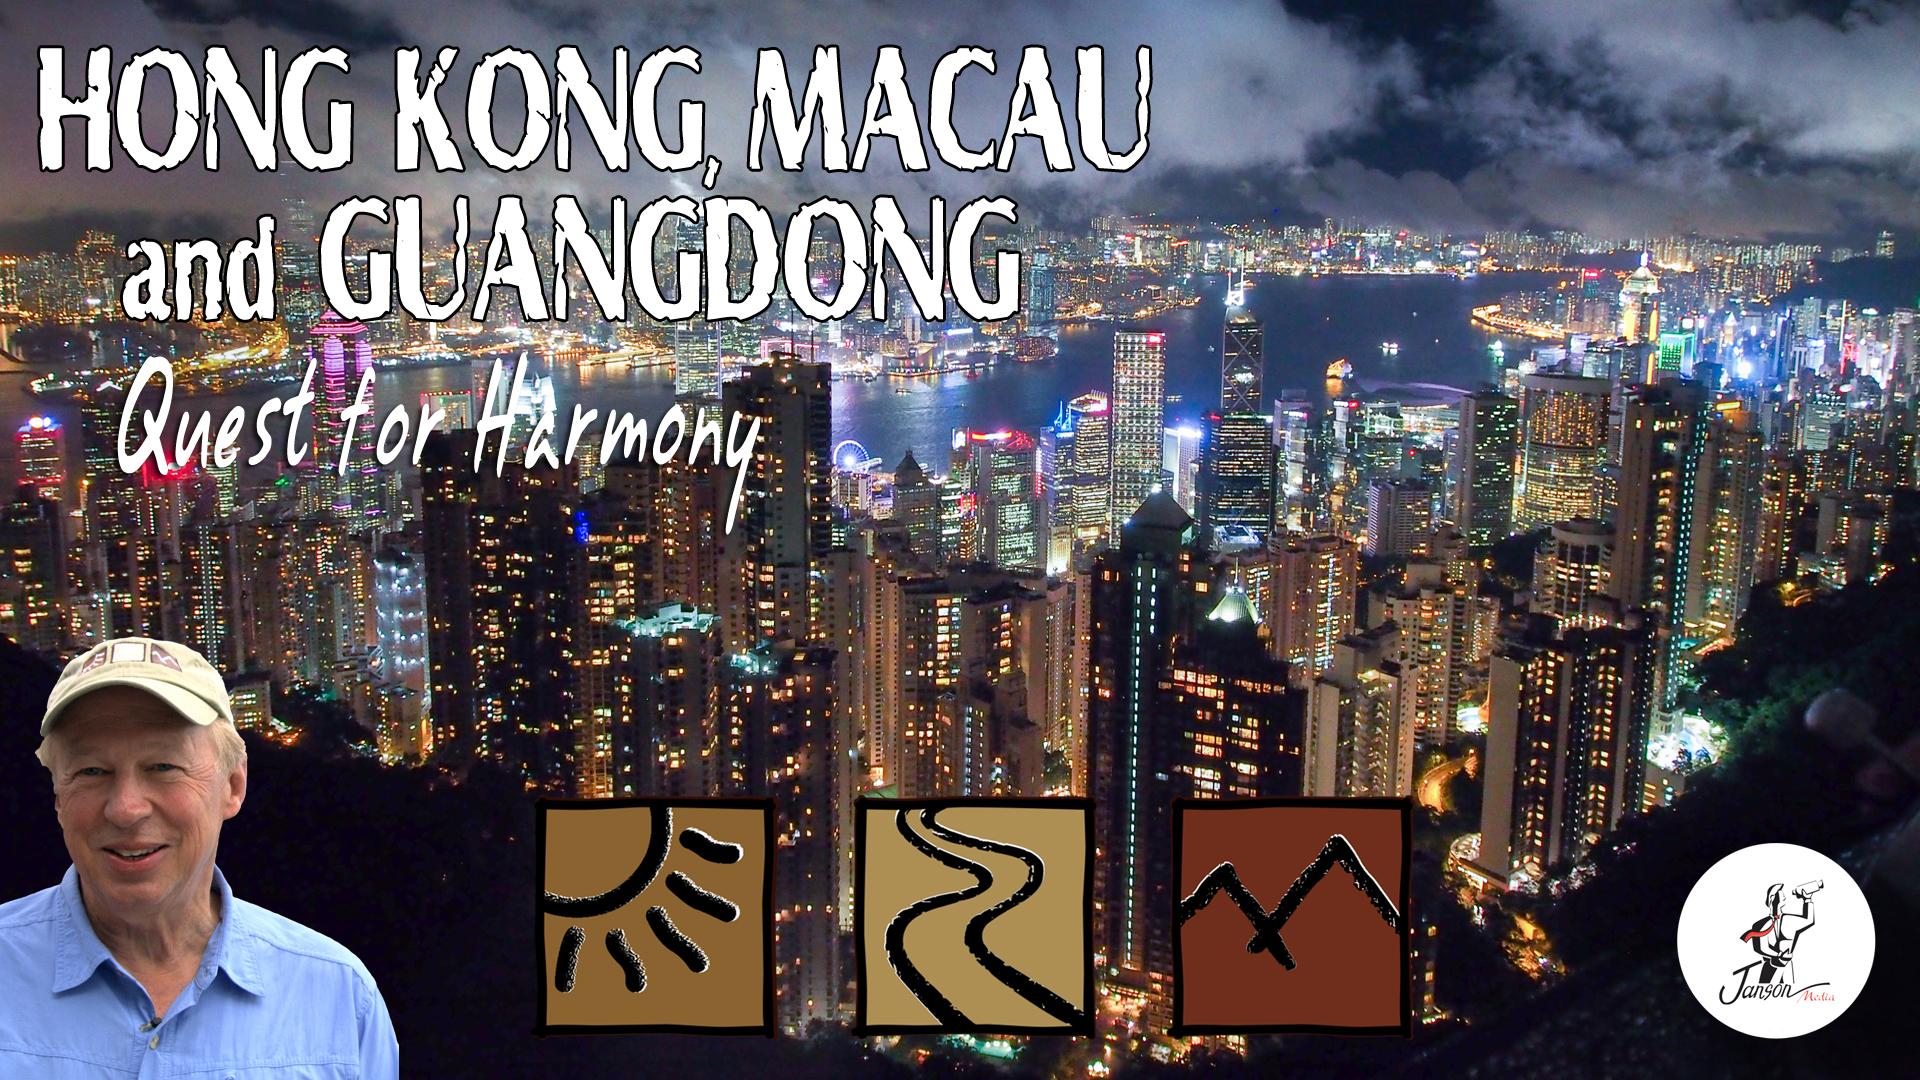 Hong Kong, Macau and Guangdong: Quest for Harmony